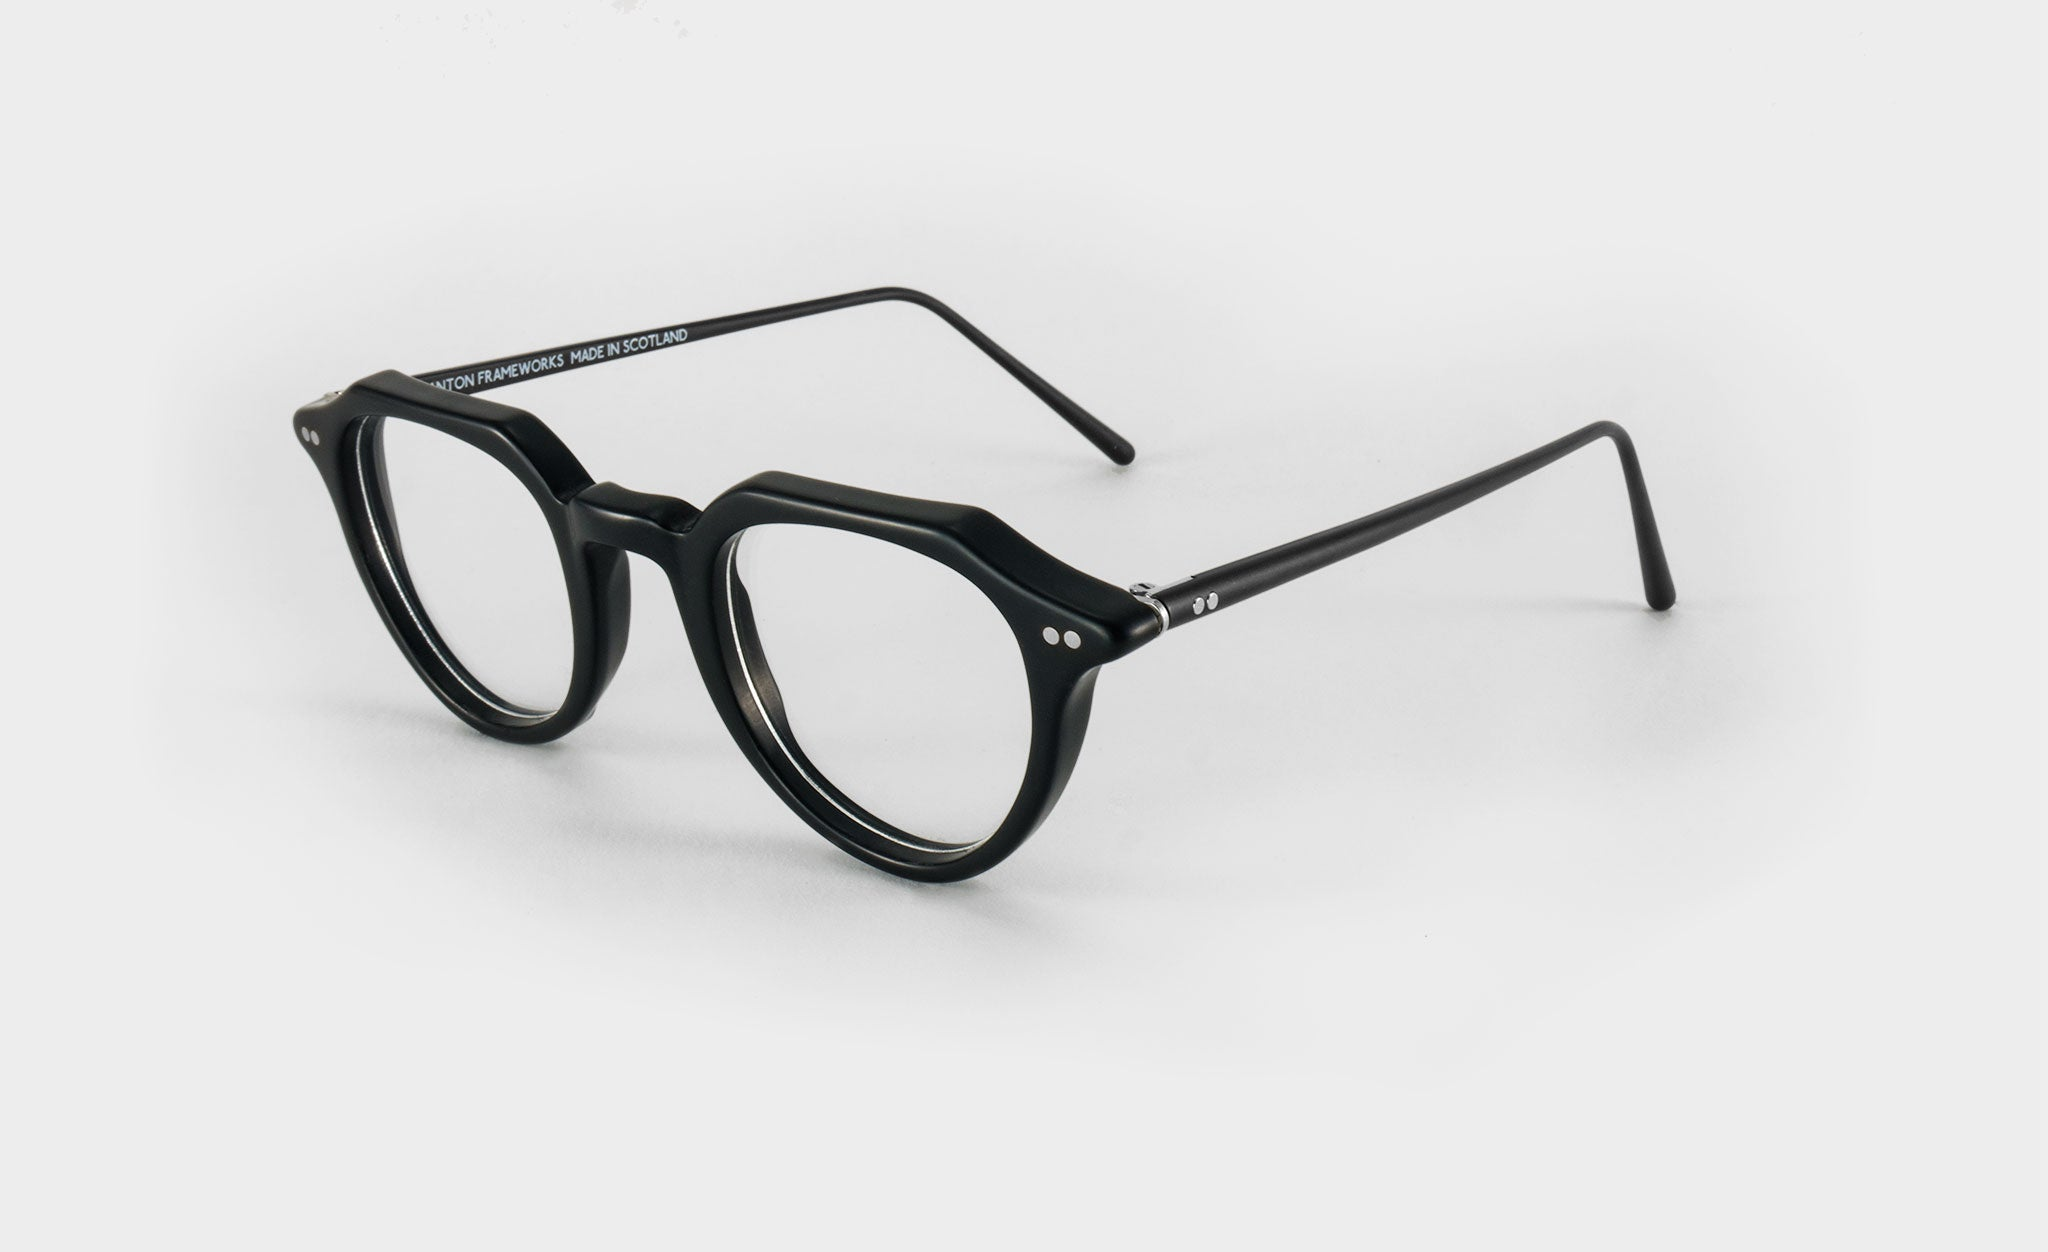 mens black round glasses side view